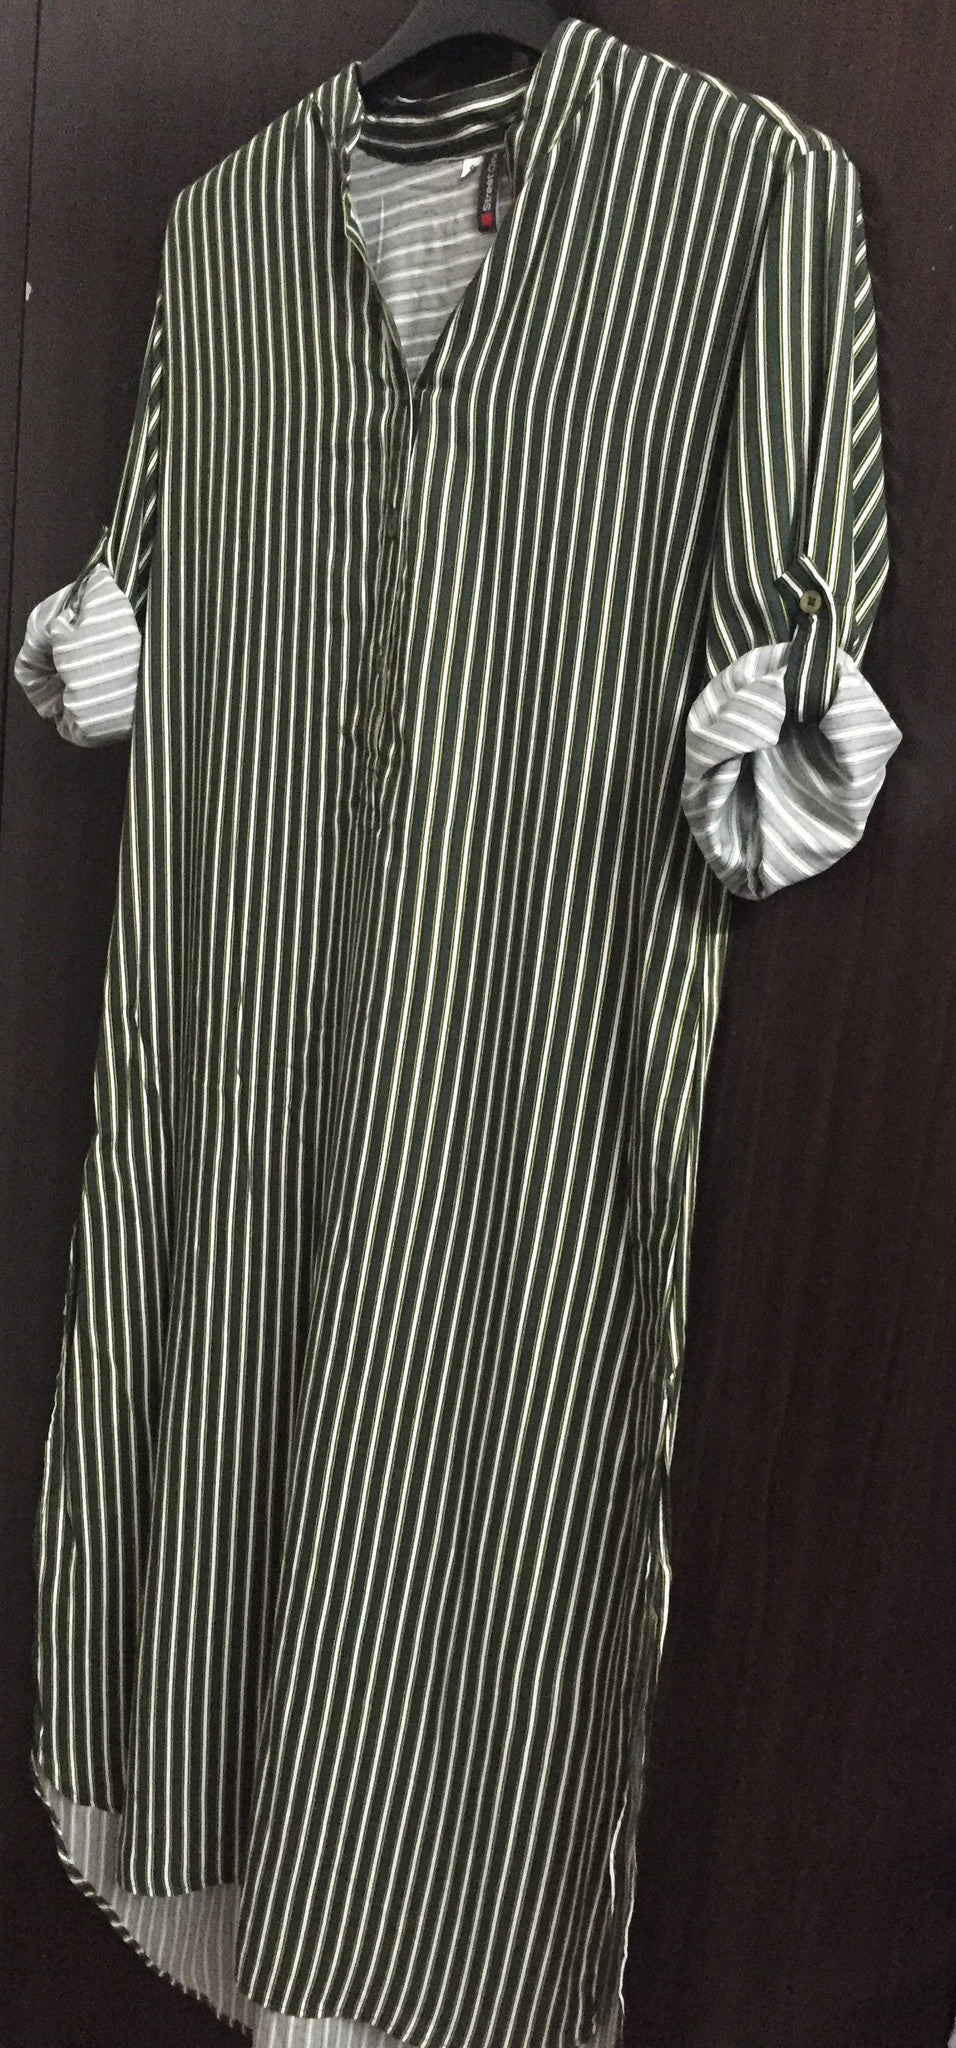 Printed Green, Cream and Yellow Shirtdress with vertical stripes